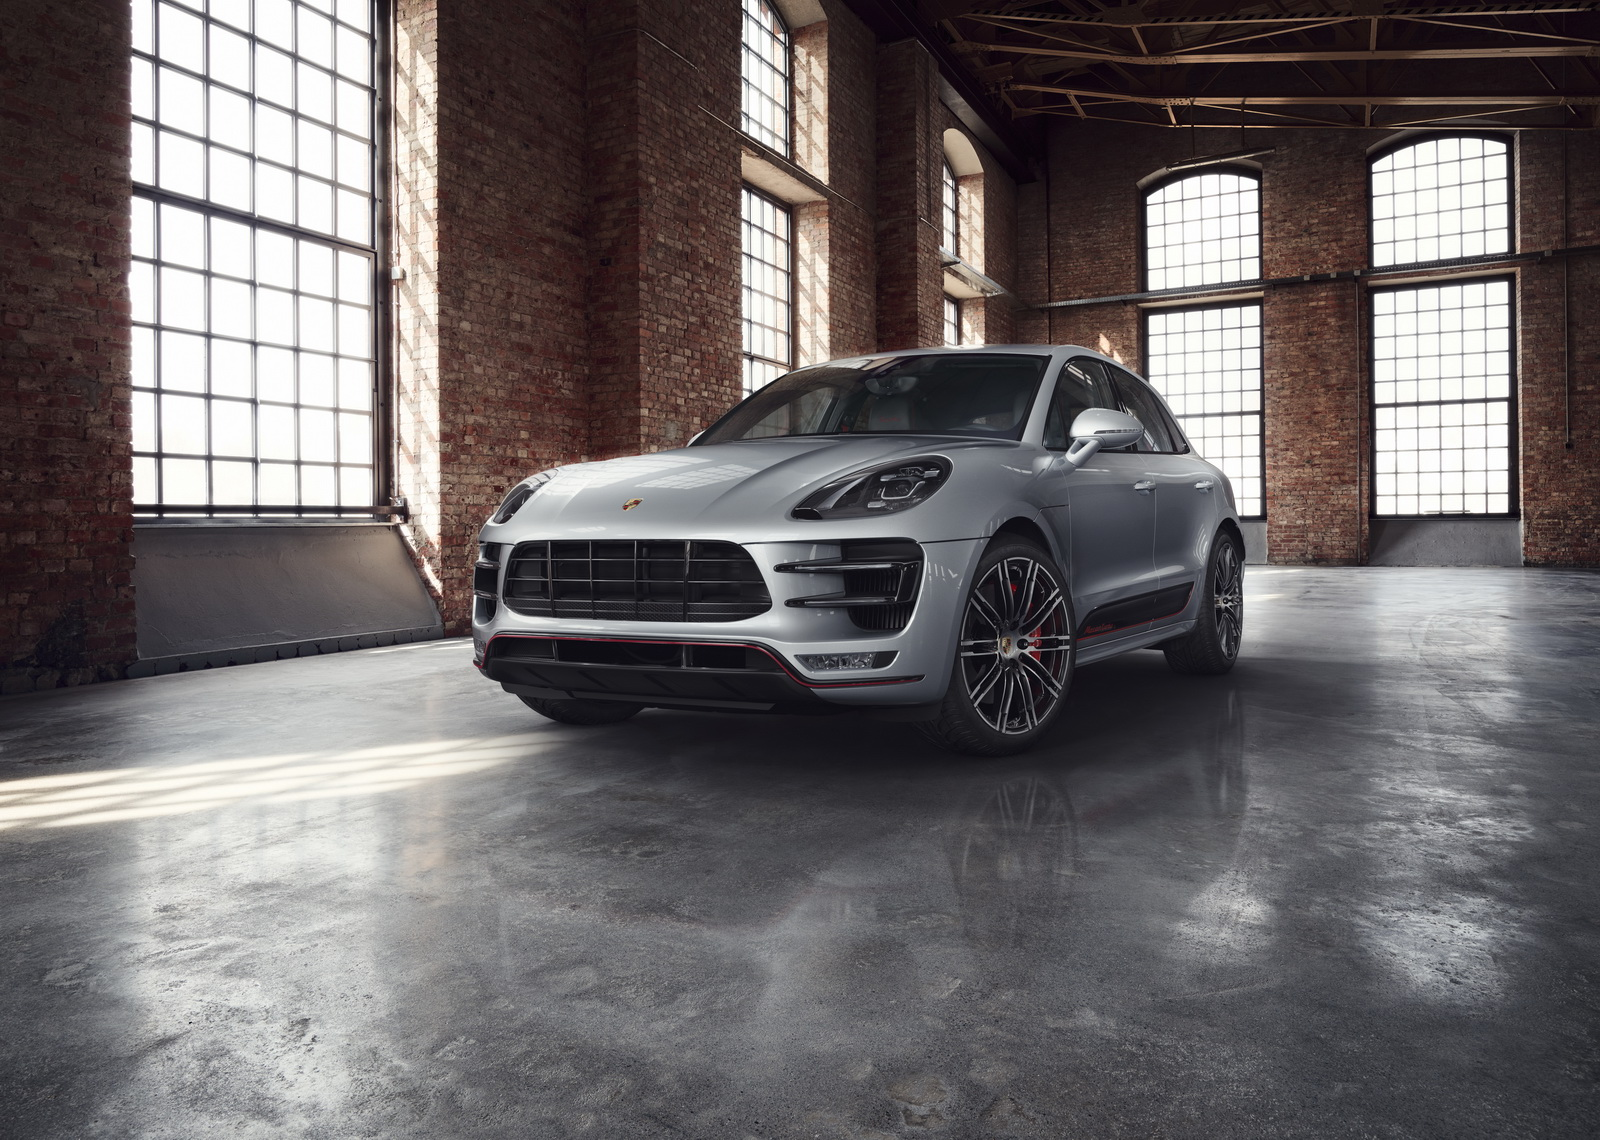 Porsche_Macan_Turbo_Exclusive_Performance_Edition_00